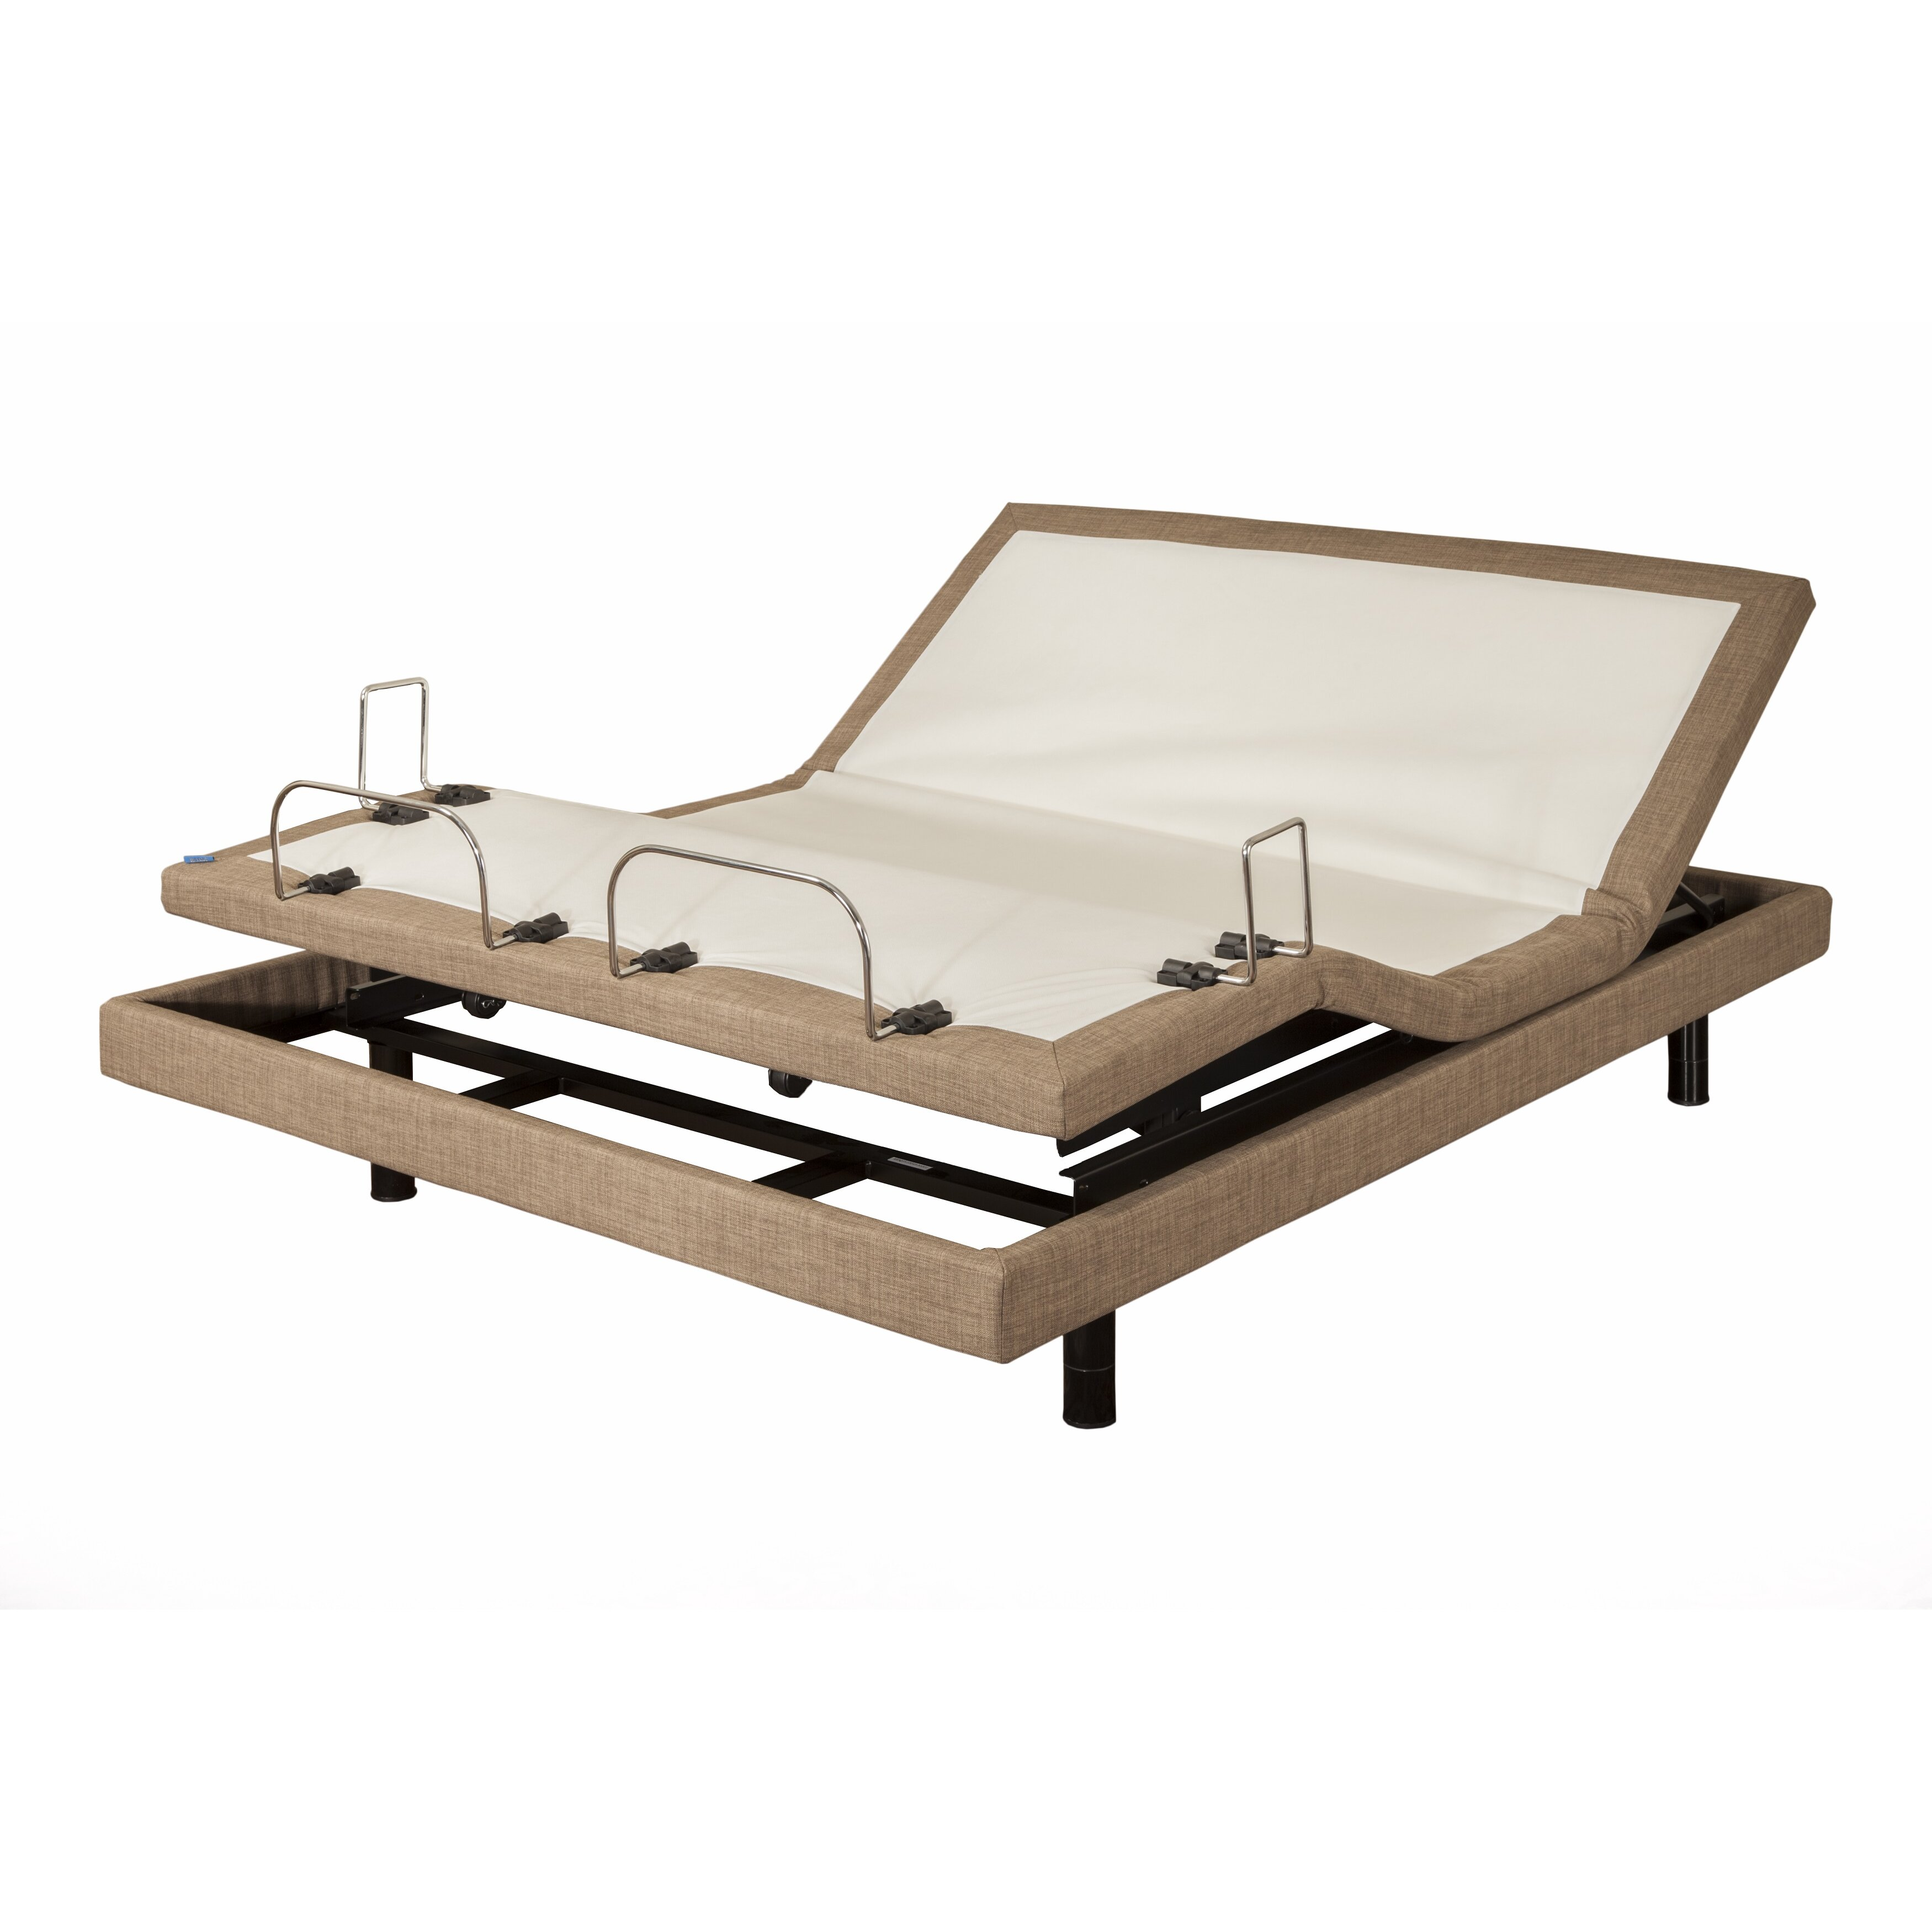 Adjustable Bed Base Full : Full electric m adjustable base bed wayfair